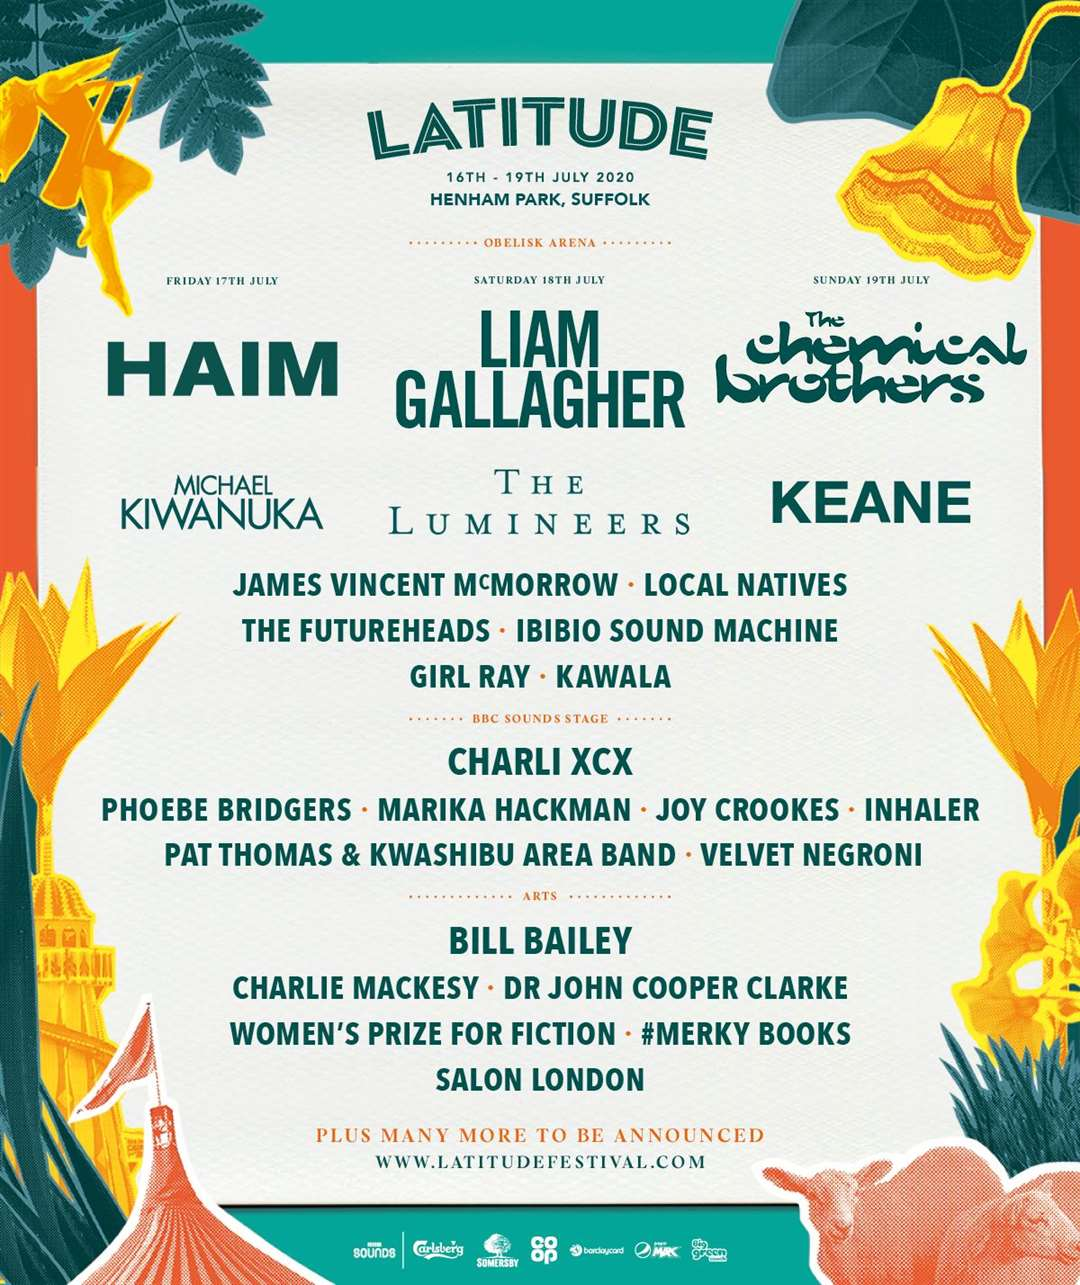 Bill Bailey to headline Latitude